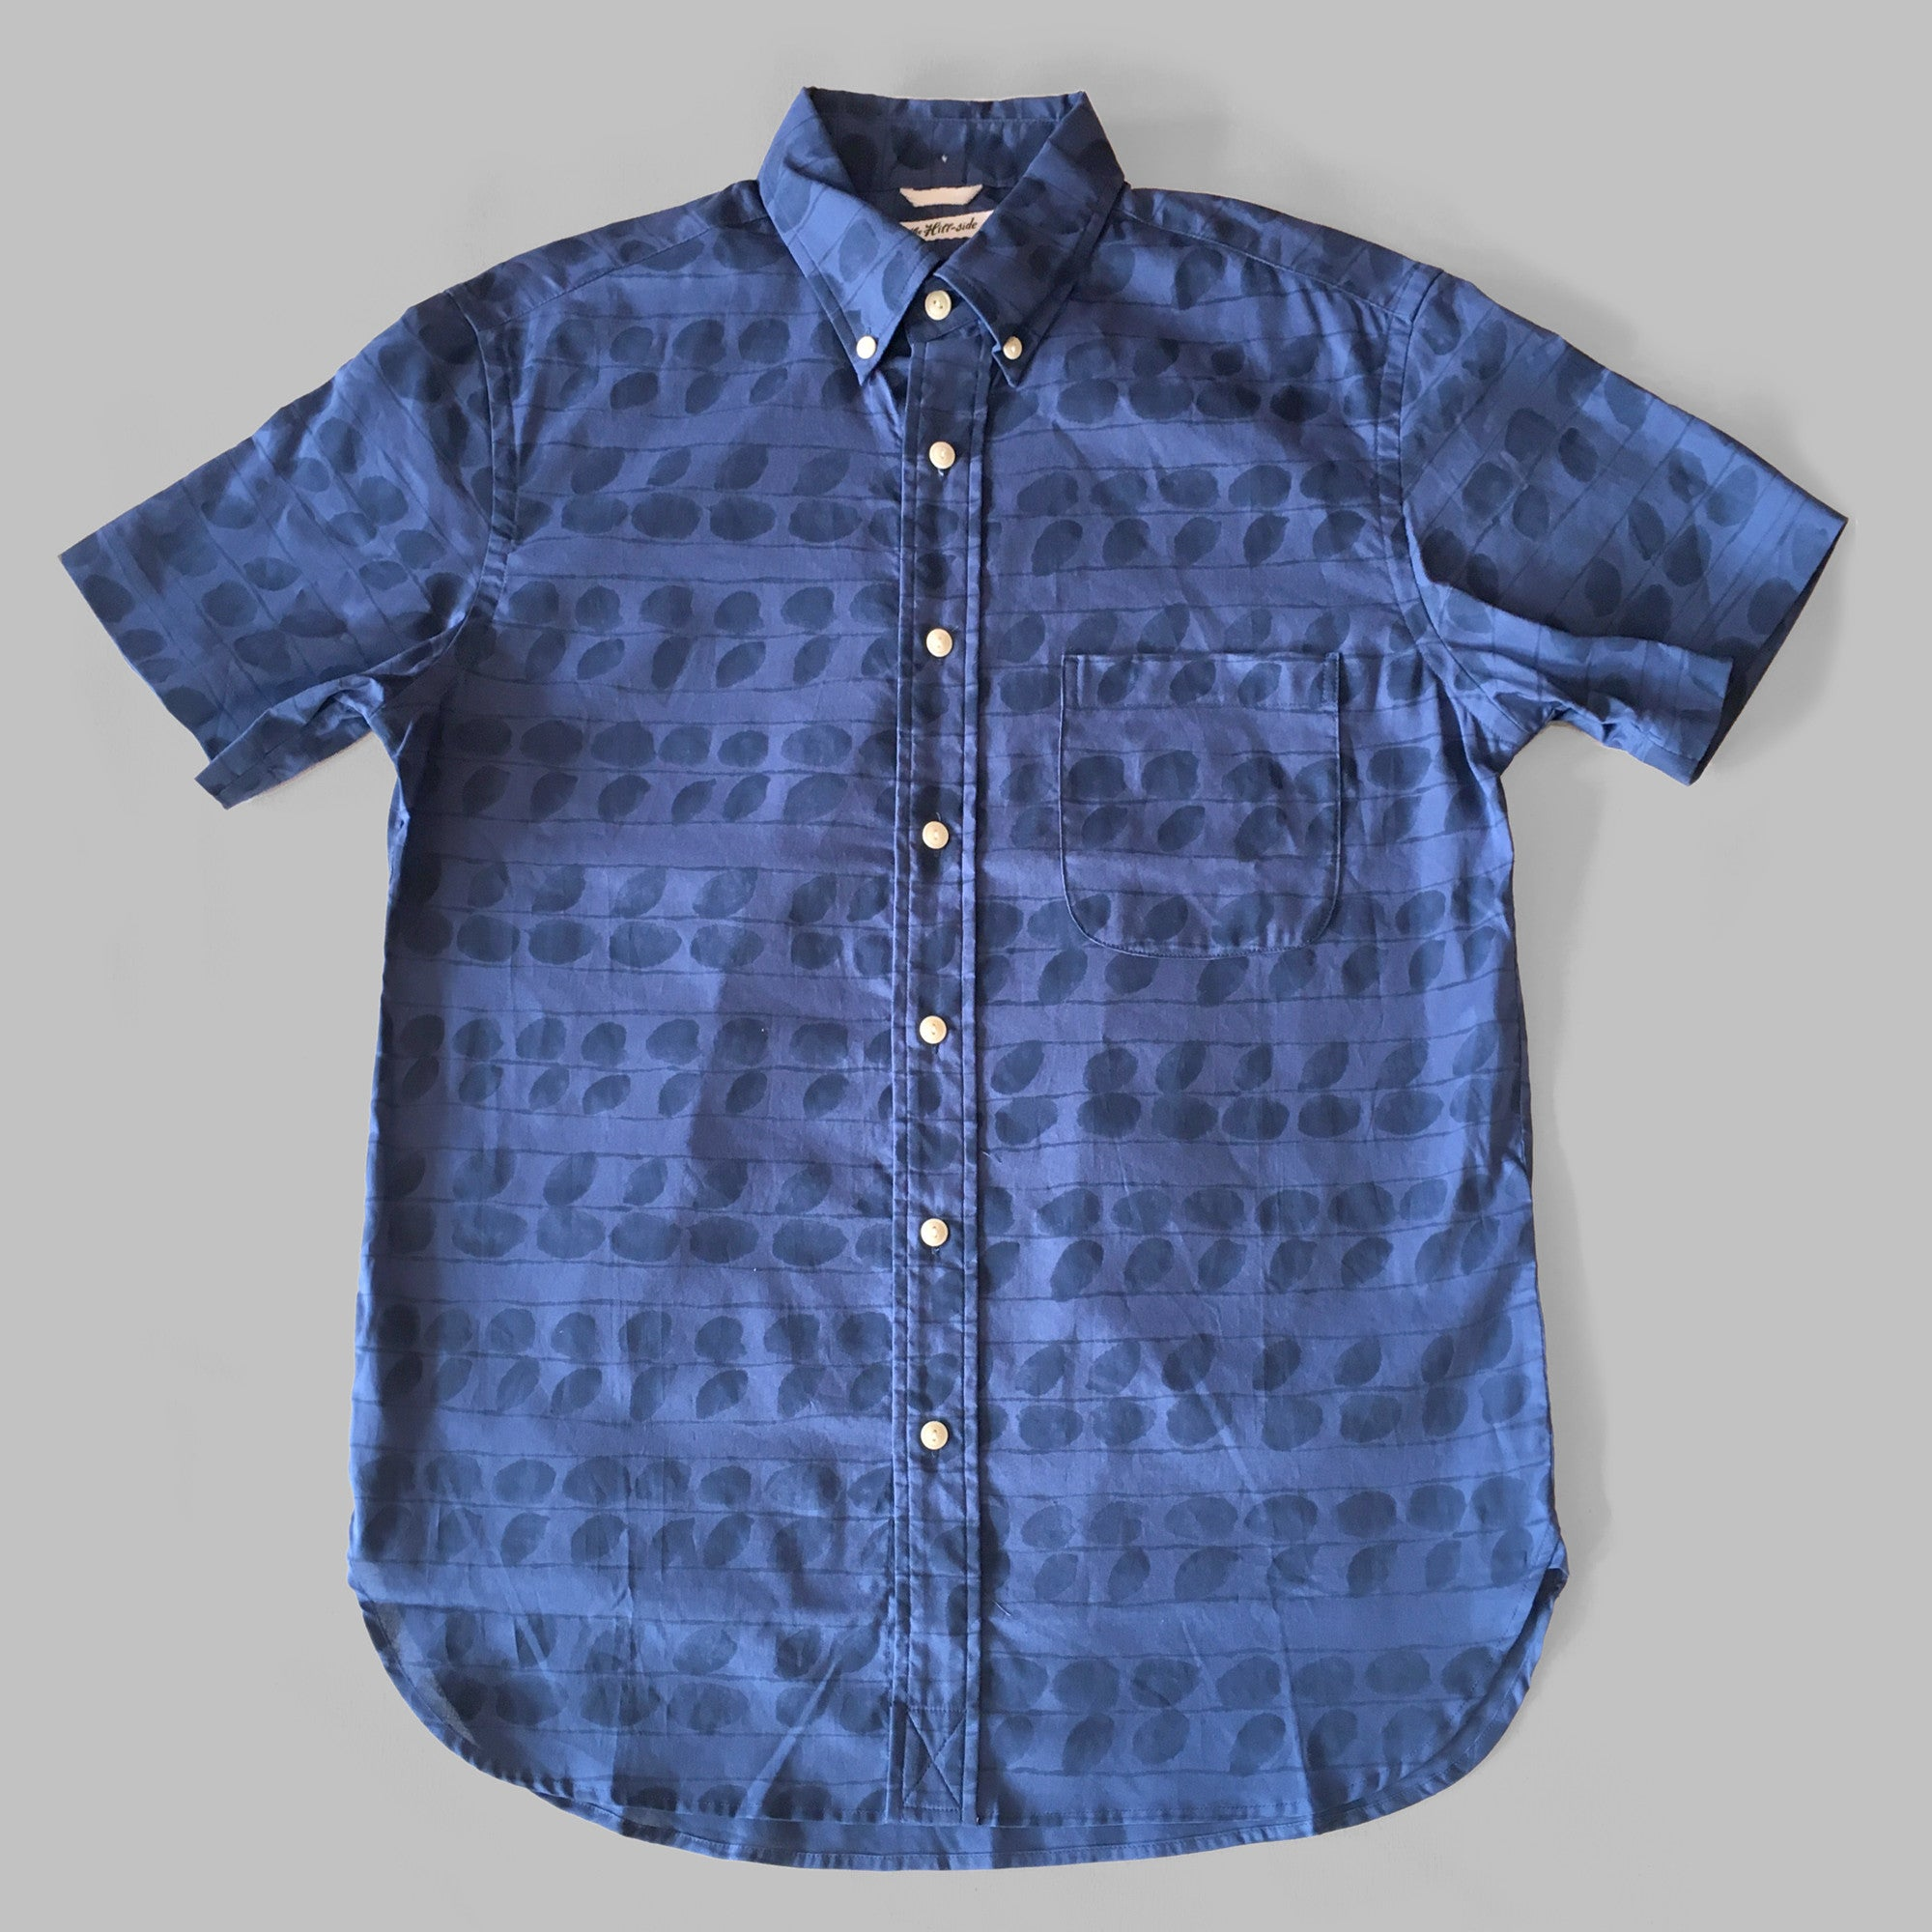 The Hill-Side - Endo Leaves Print Short Sleeve Standard Shirt, Blue / Navy - SH2-276A - image 1